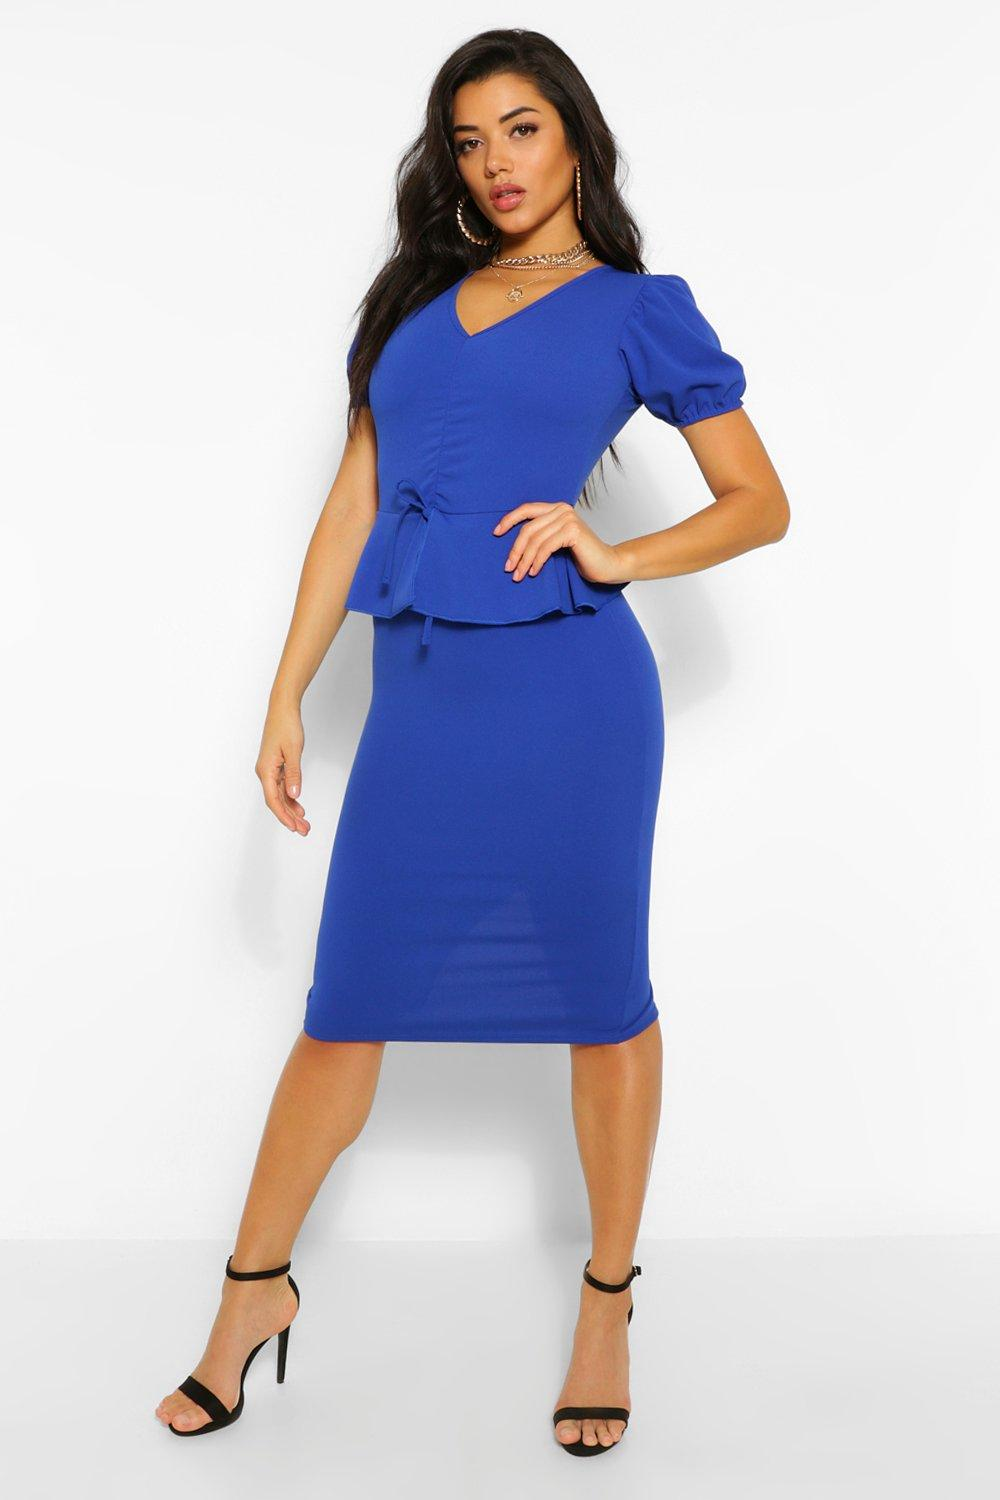 Vintage Style Dresses | Vintage Inspired Dresses Womens Rouched Peplum Detail Midi Dress - Blue - 14 $35.00 AT vintagedancer.com